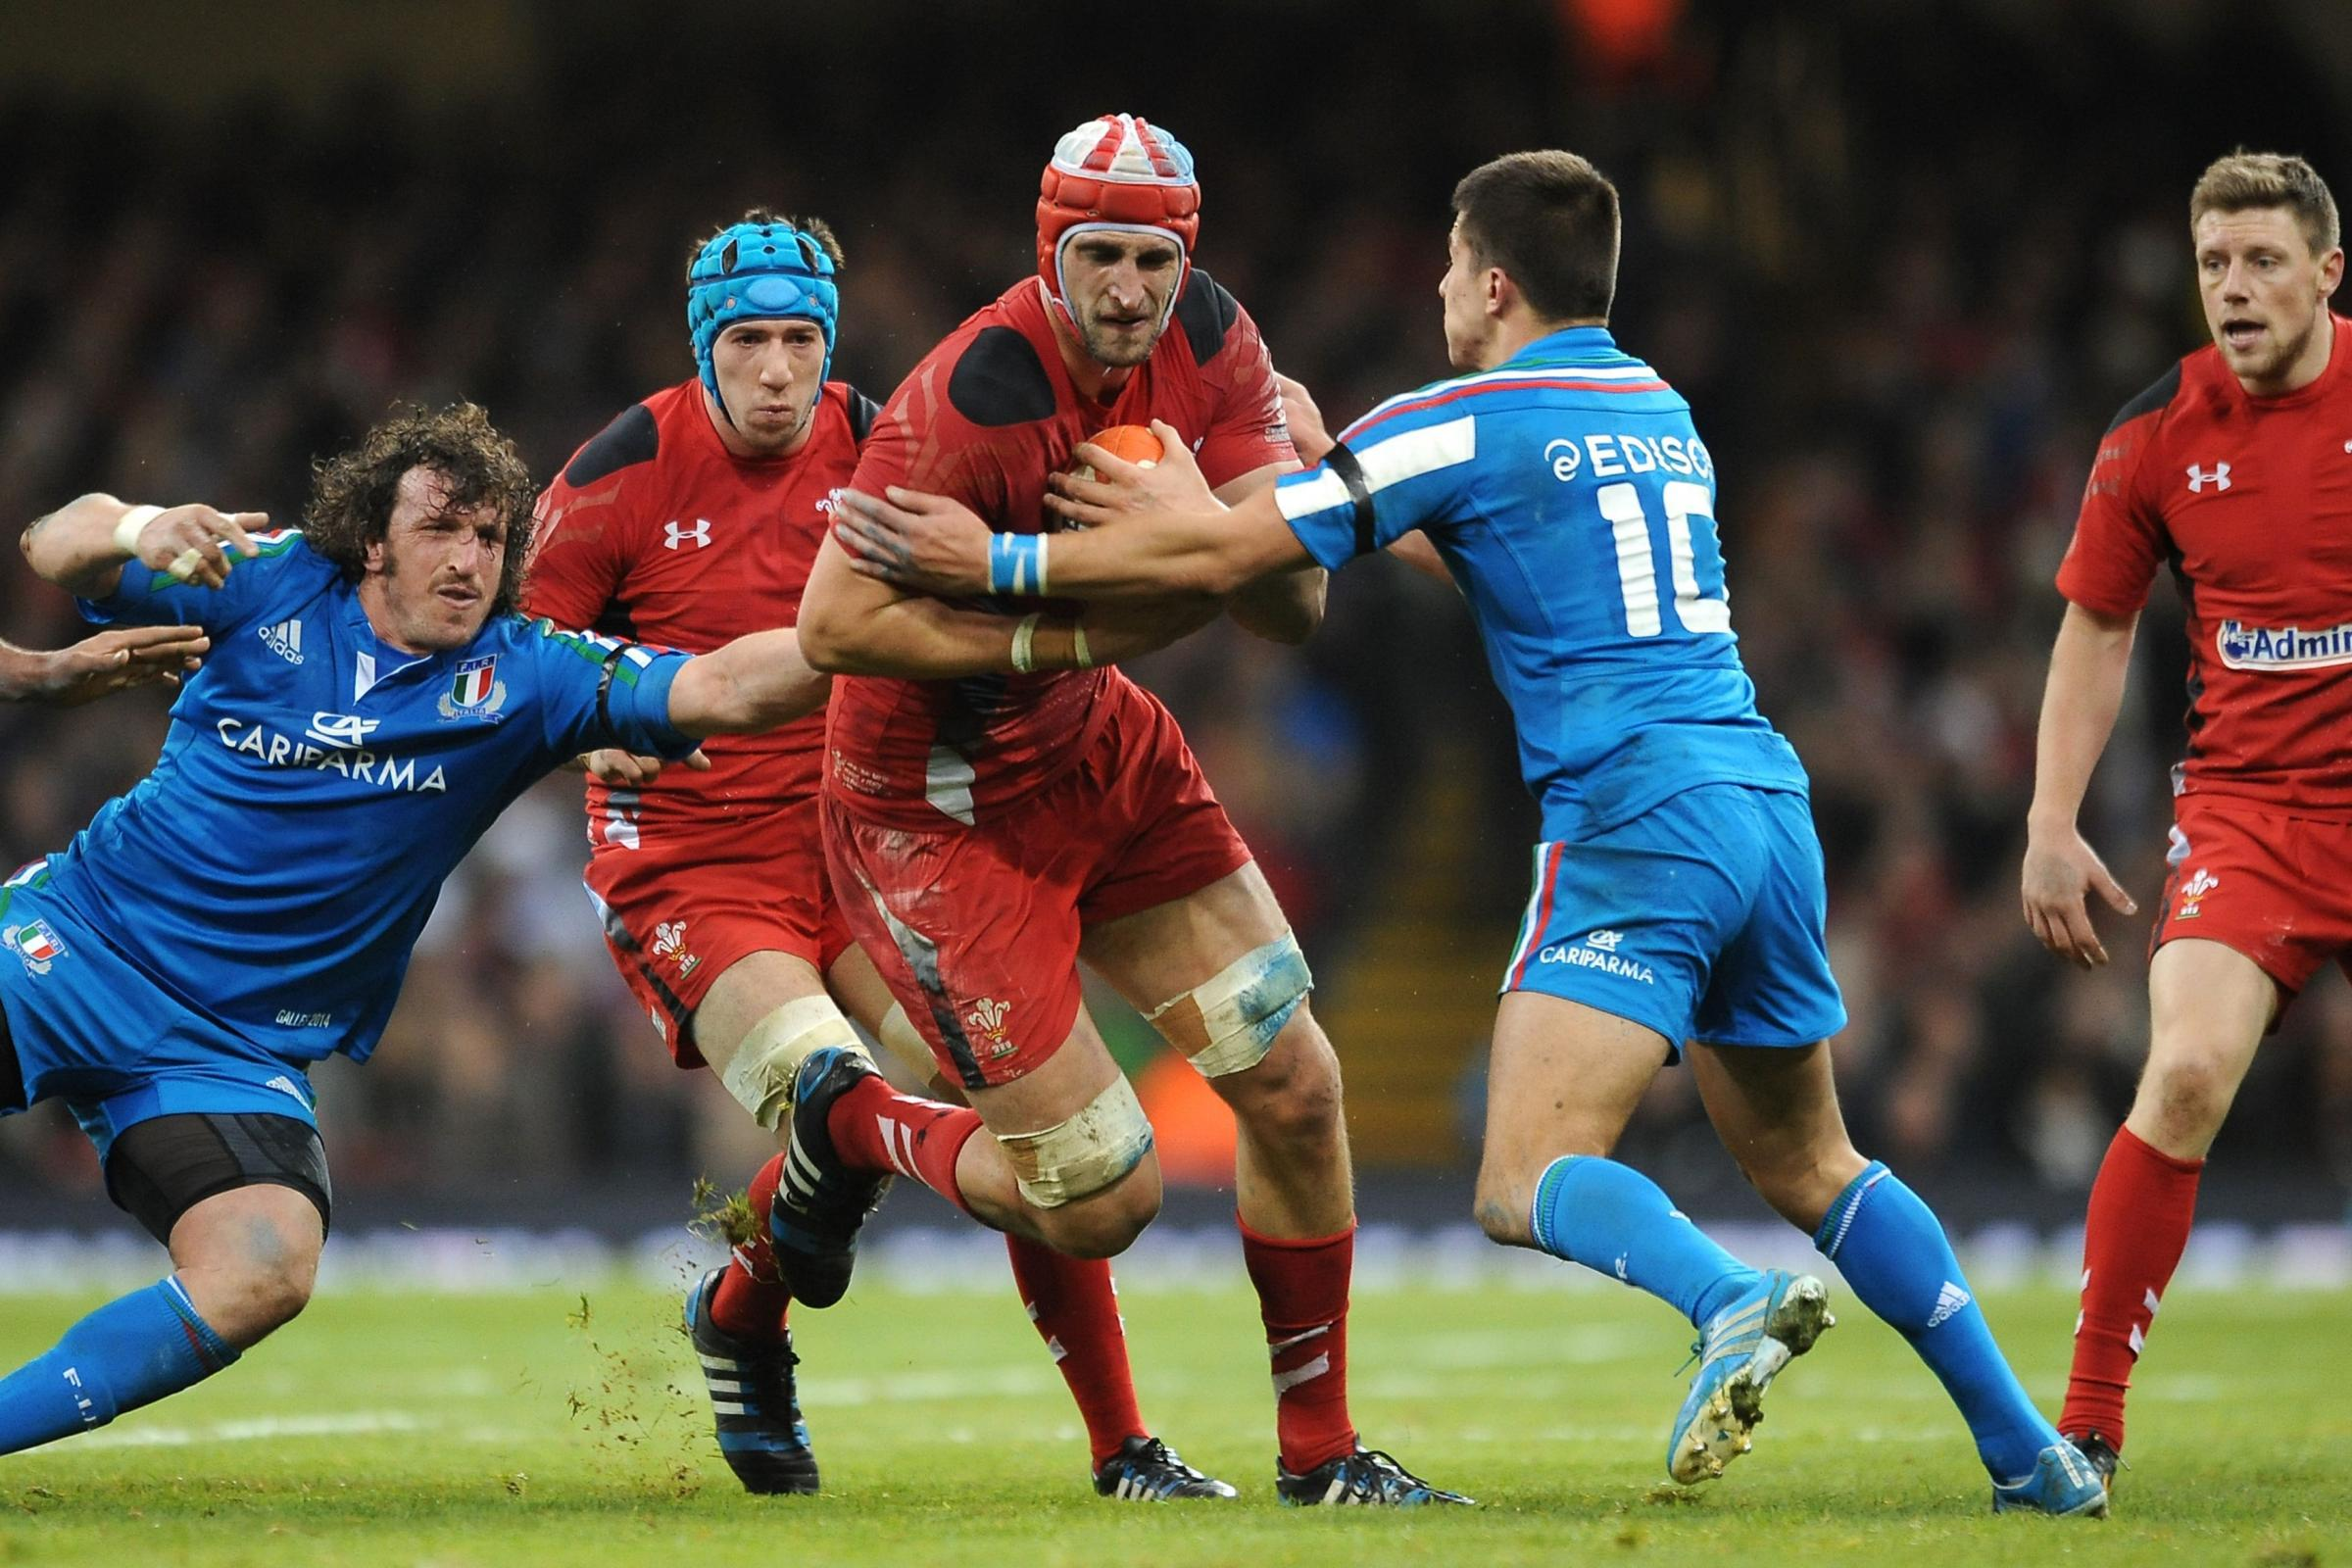 Luke Charteris feeling the heat from ex-Dragons teammate